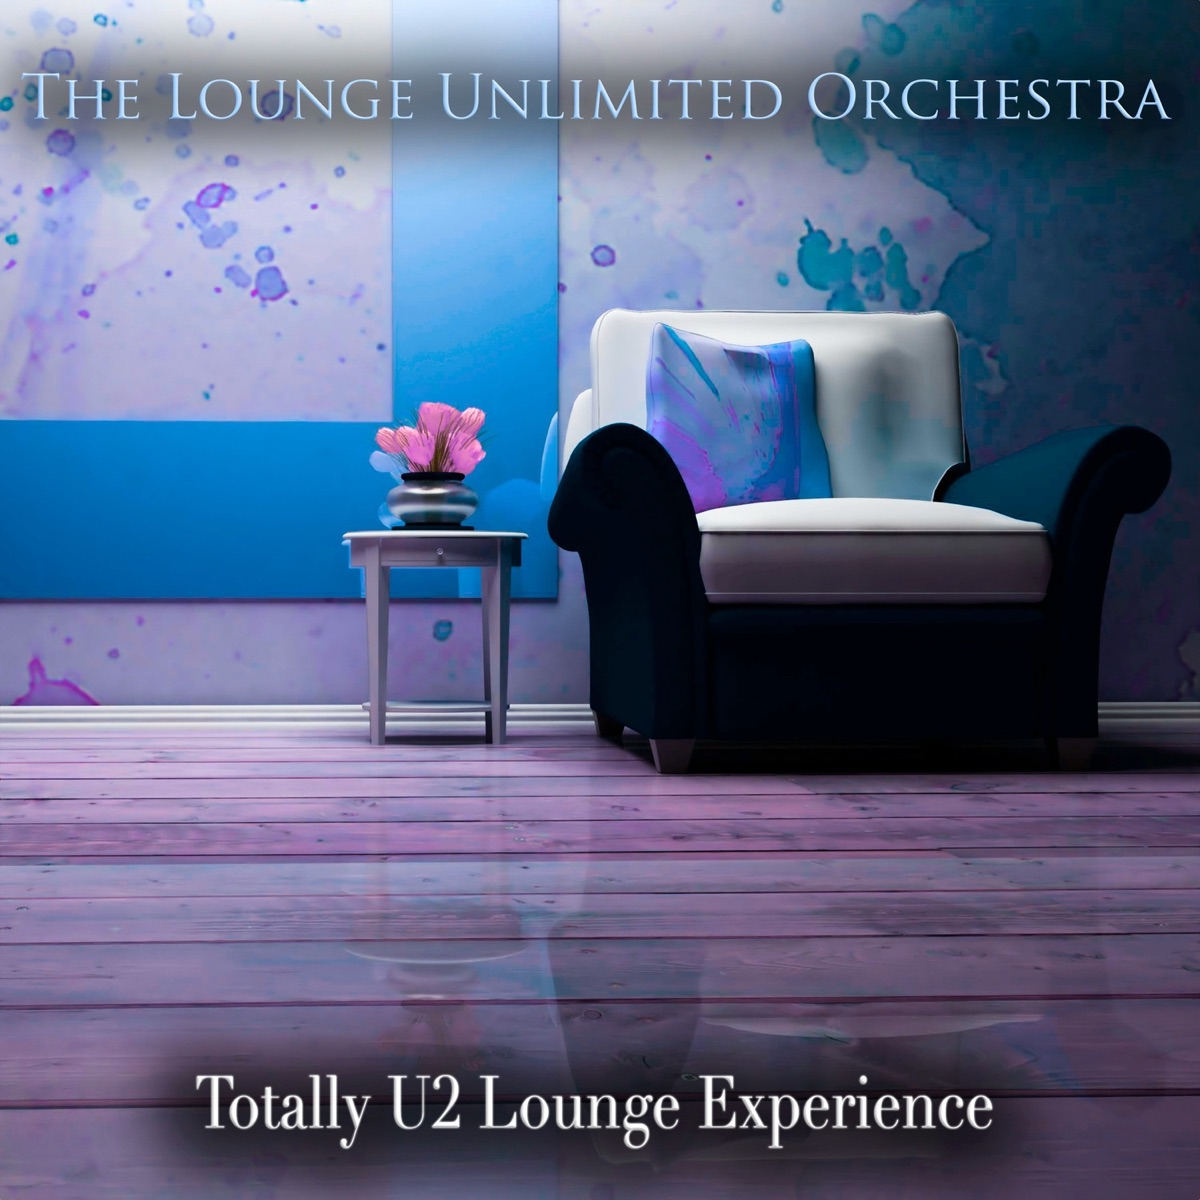 Totally U2 Lounge Experience The Lounge Unlimited Orchestra CD cover